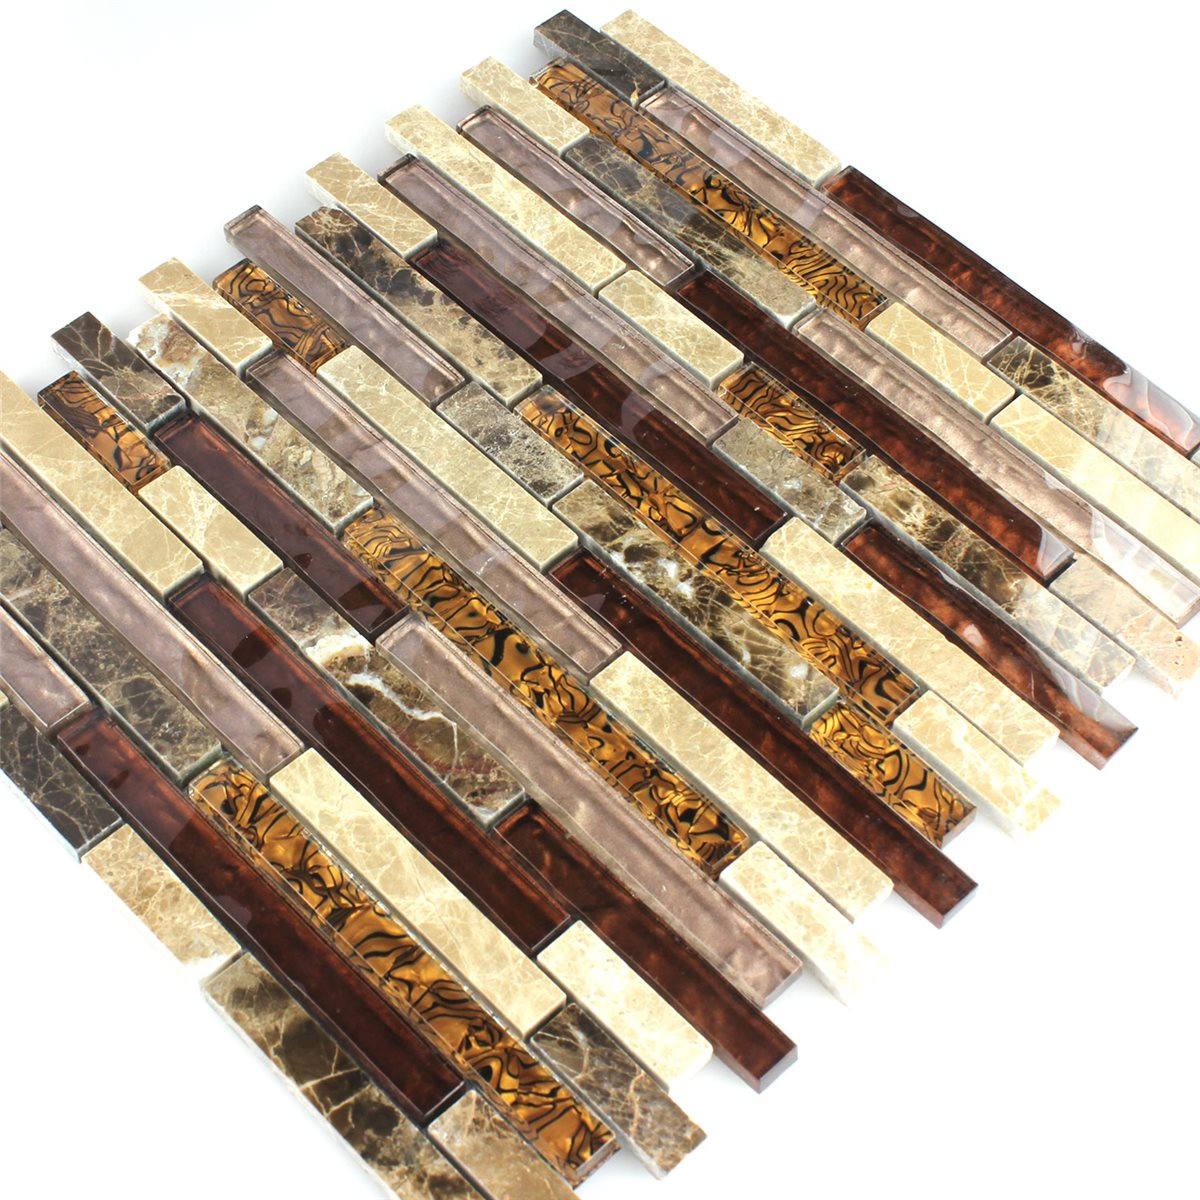 Crystal Marble Glass Mosaic Tiles Brown Beige | www.mosafil.co.uk